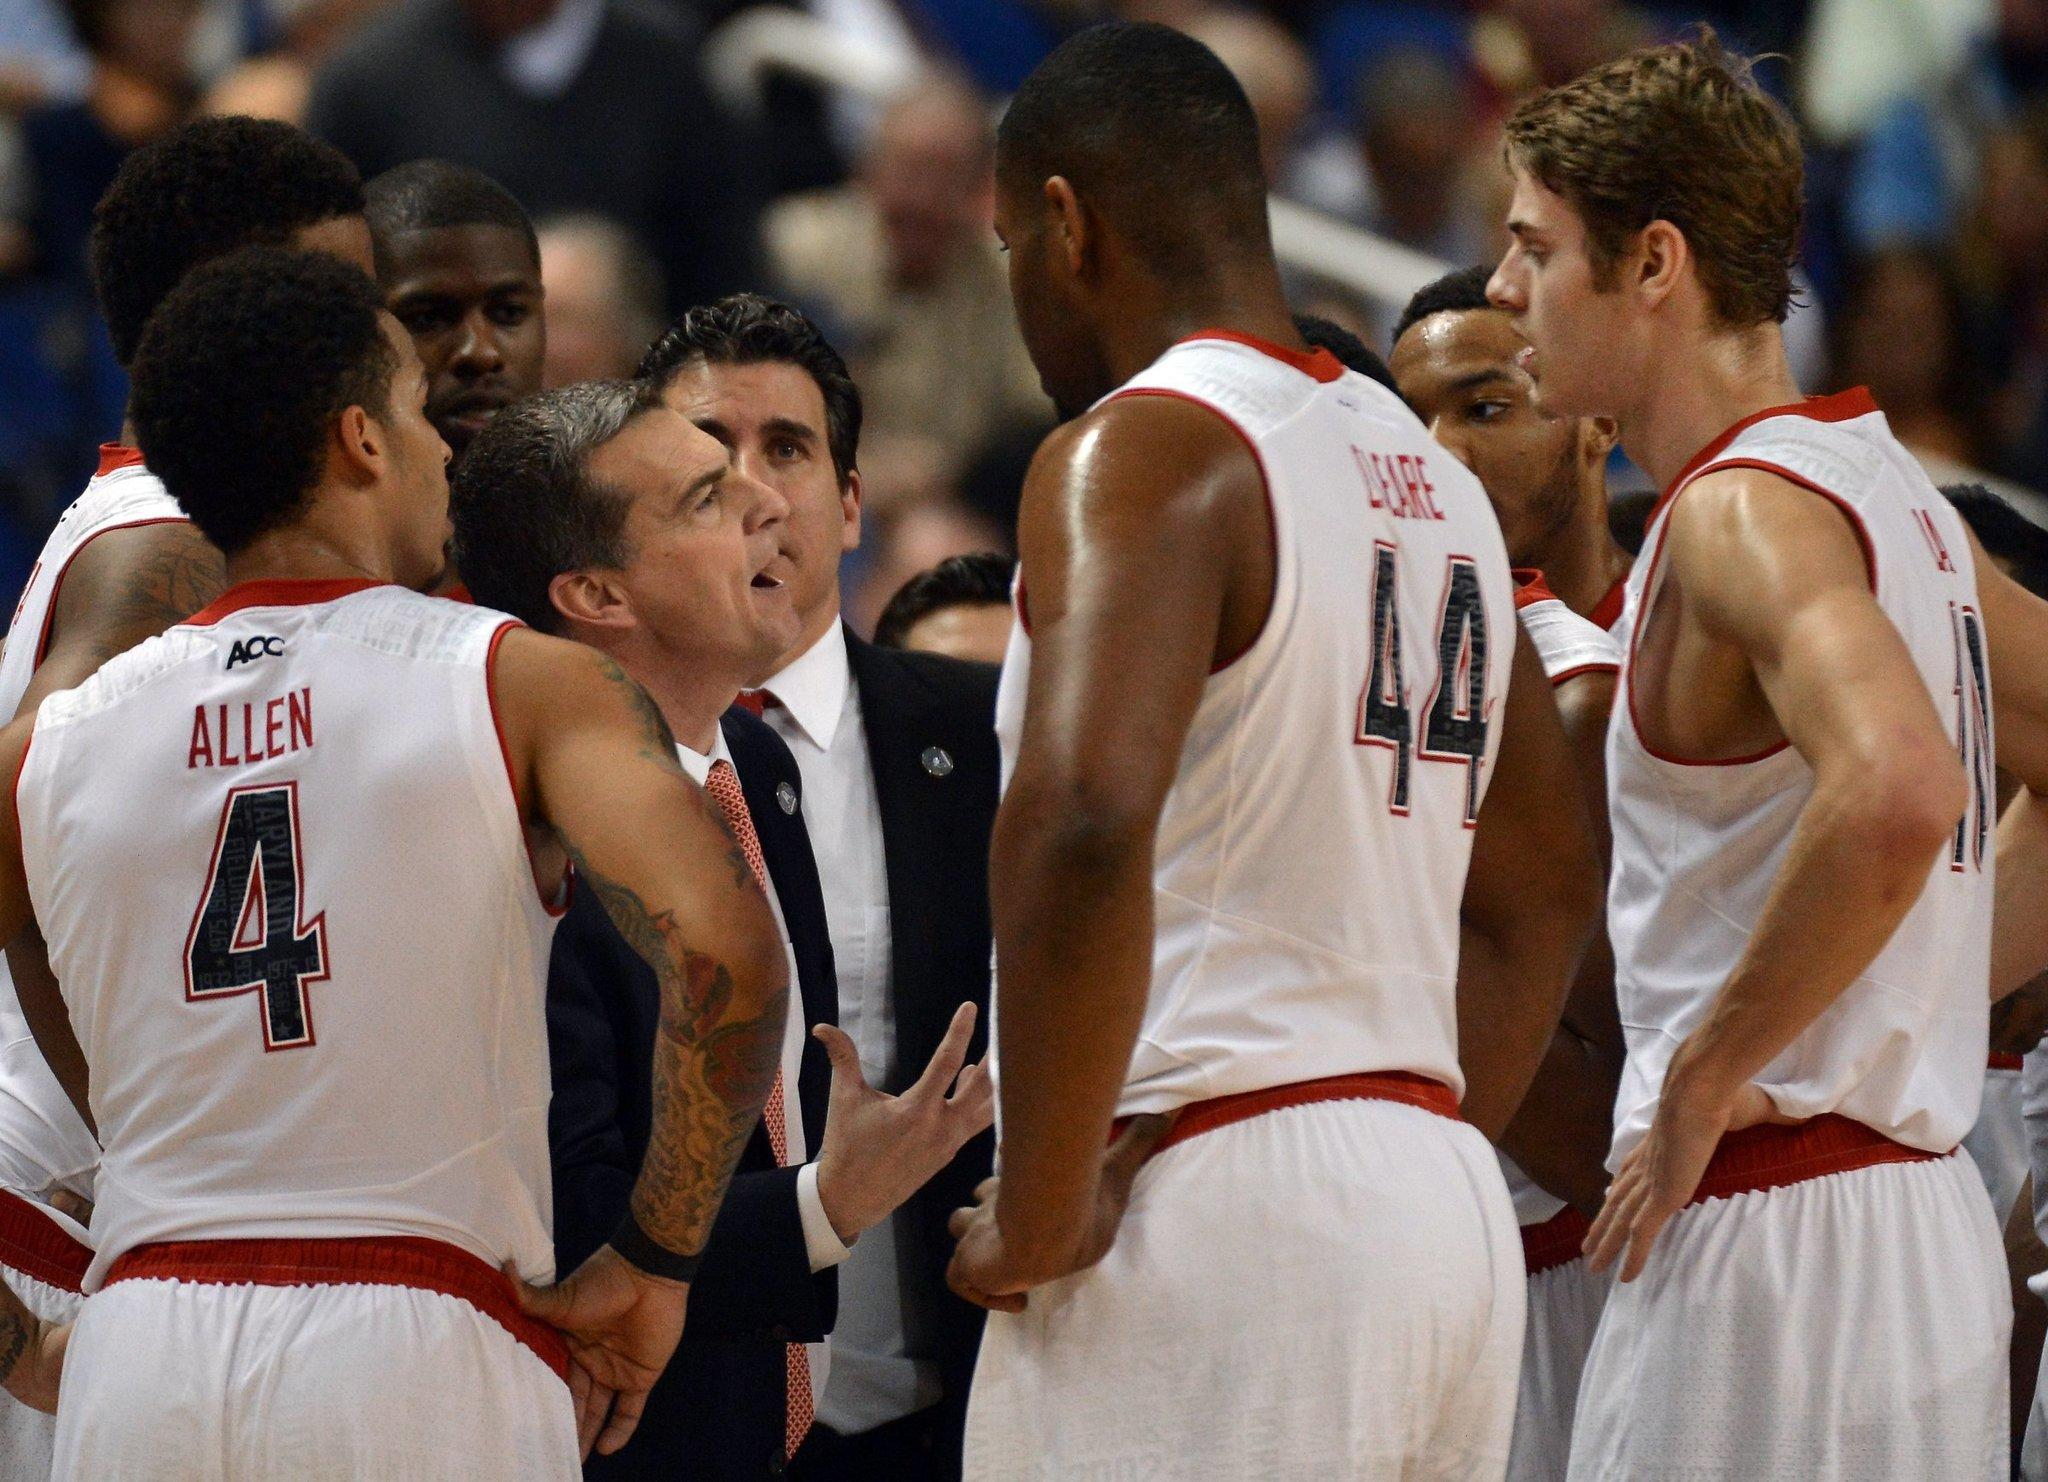 Maryland's Mark Turgeon, shown during the second half of the Terps' 67-65 loss to Florida State, is confident in the program's direction.